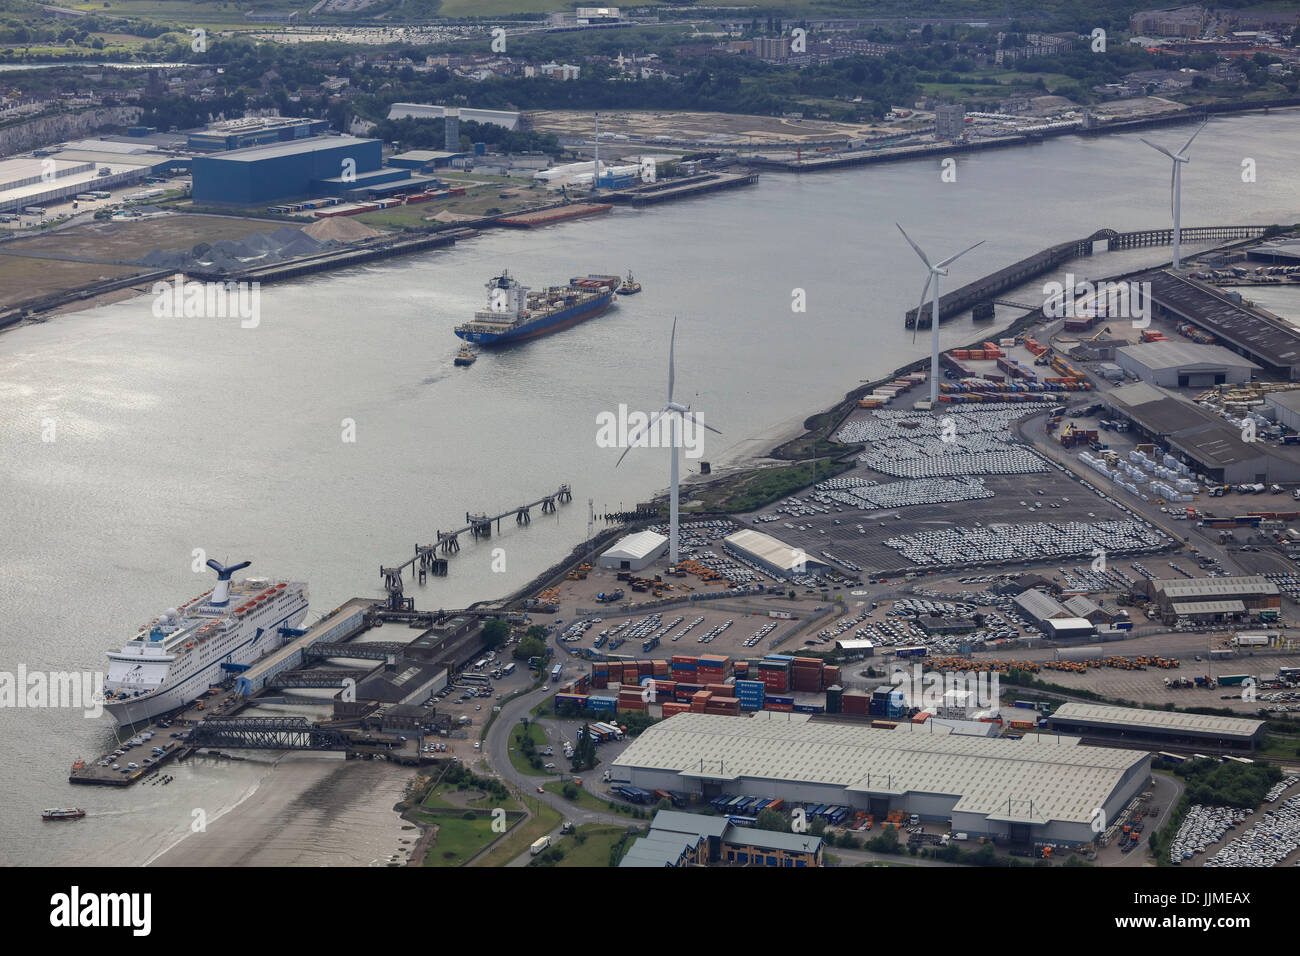 An aerial view of Purfleet Port on the River Thames in Essex - Stock Image